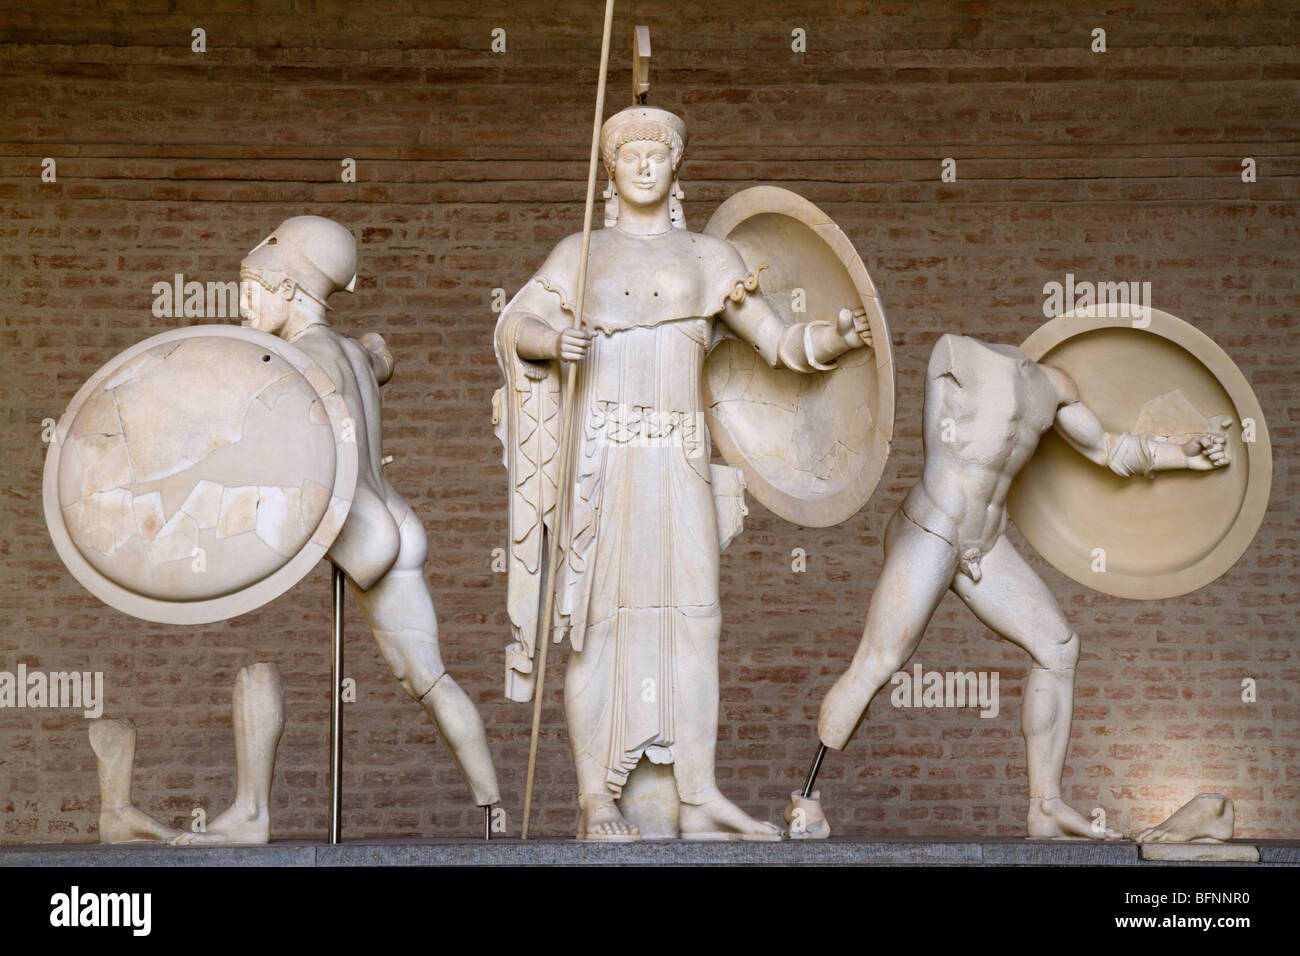 Detail of Athena and warriors from the east pediment of the temple of Aphaia at Aegina, ca. 480 BC. - Stock Image